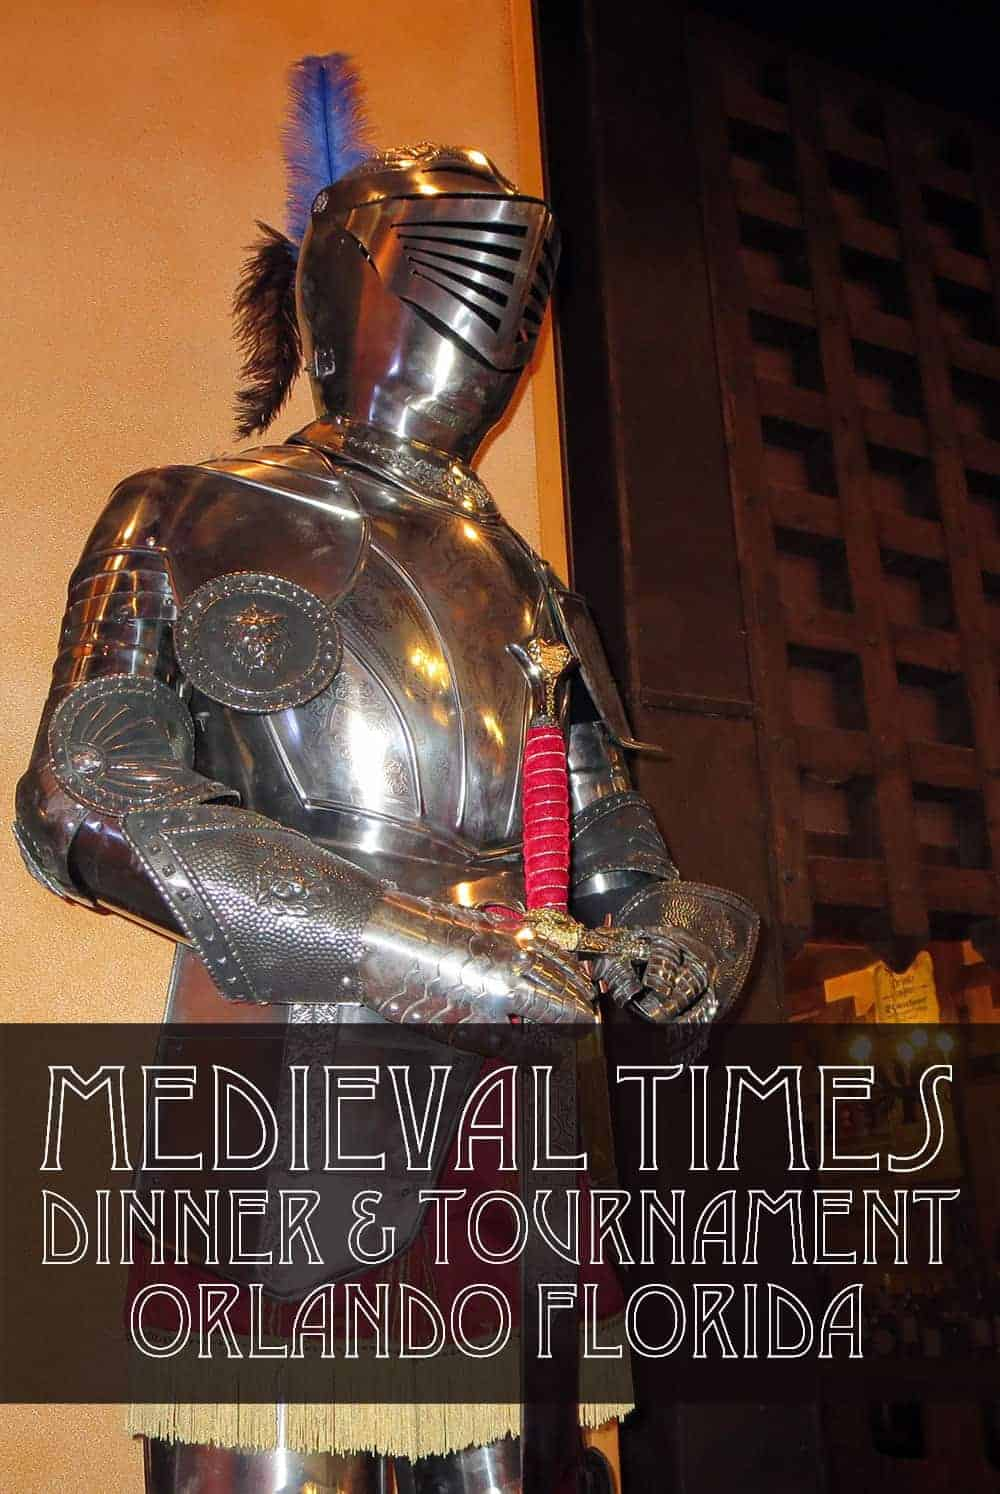 Medieval Times Dinner & Tournament - Orlando, Florida